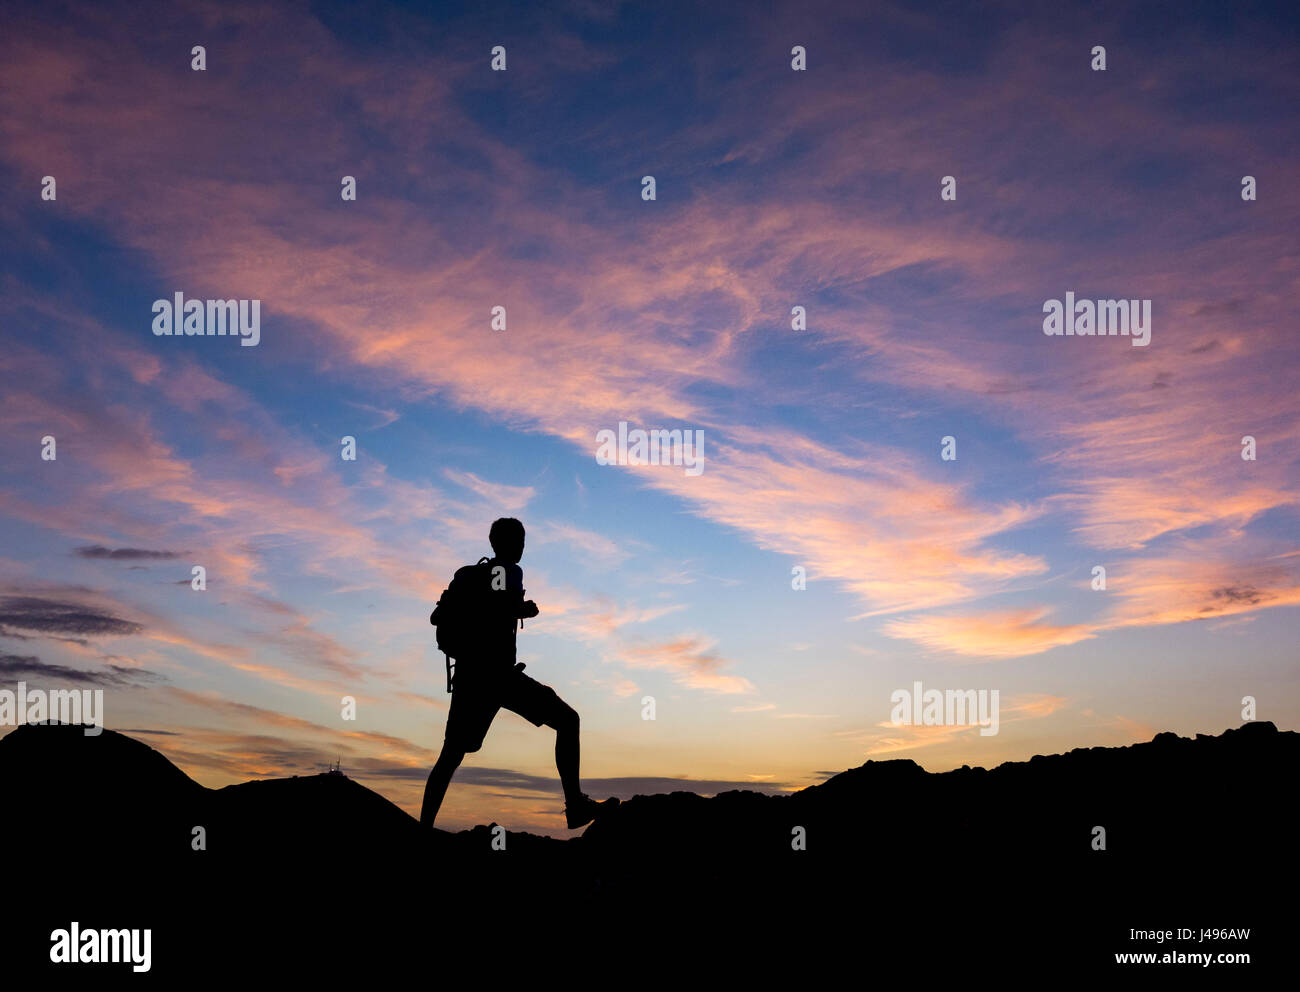 Las Palmas, Gran Canaria, Canary Islands, Spain. 11th May, 2017. Weather: A trail runner on volcanic mountain as Stock Photo